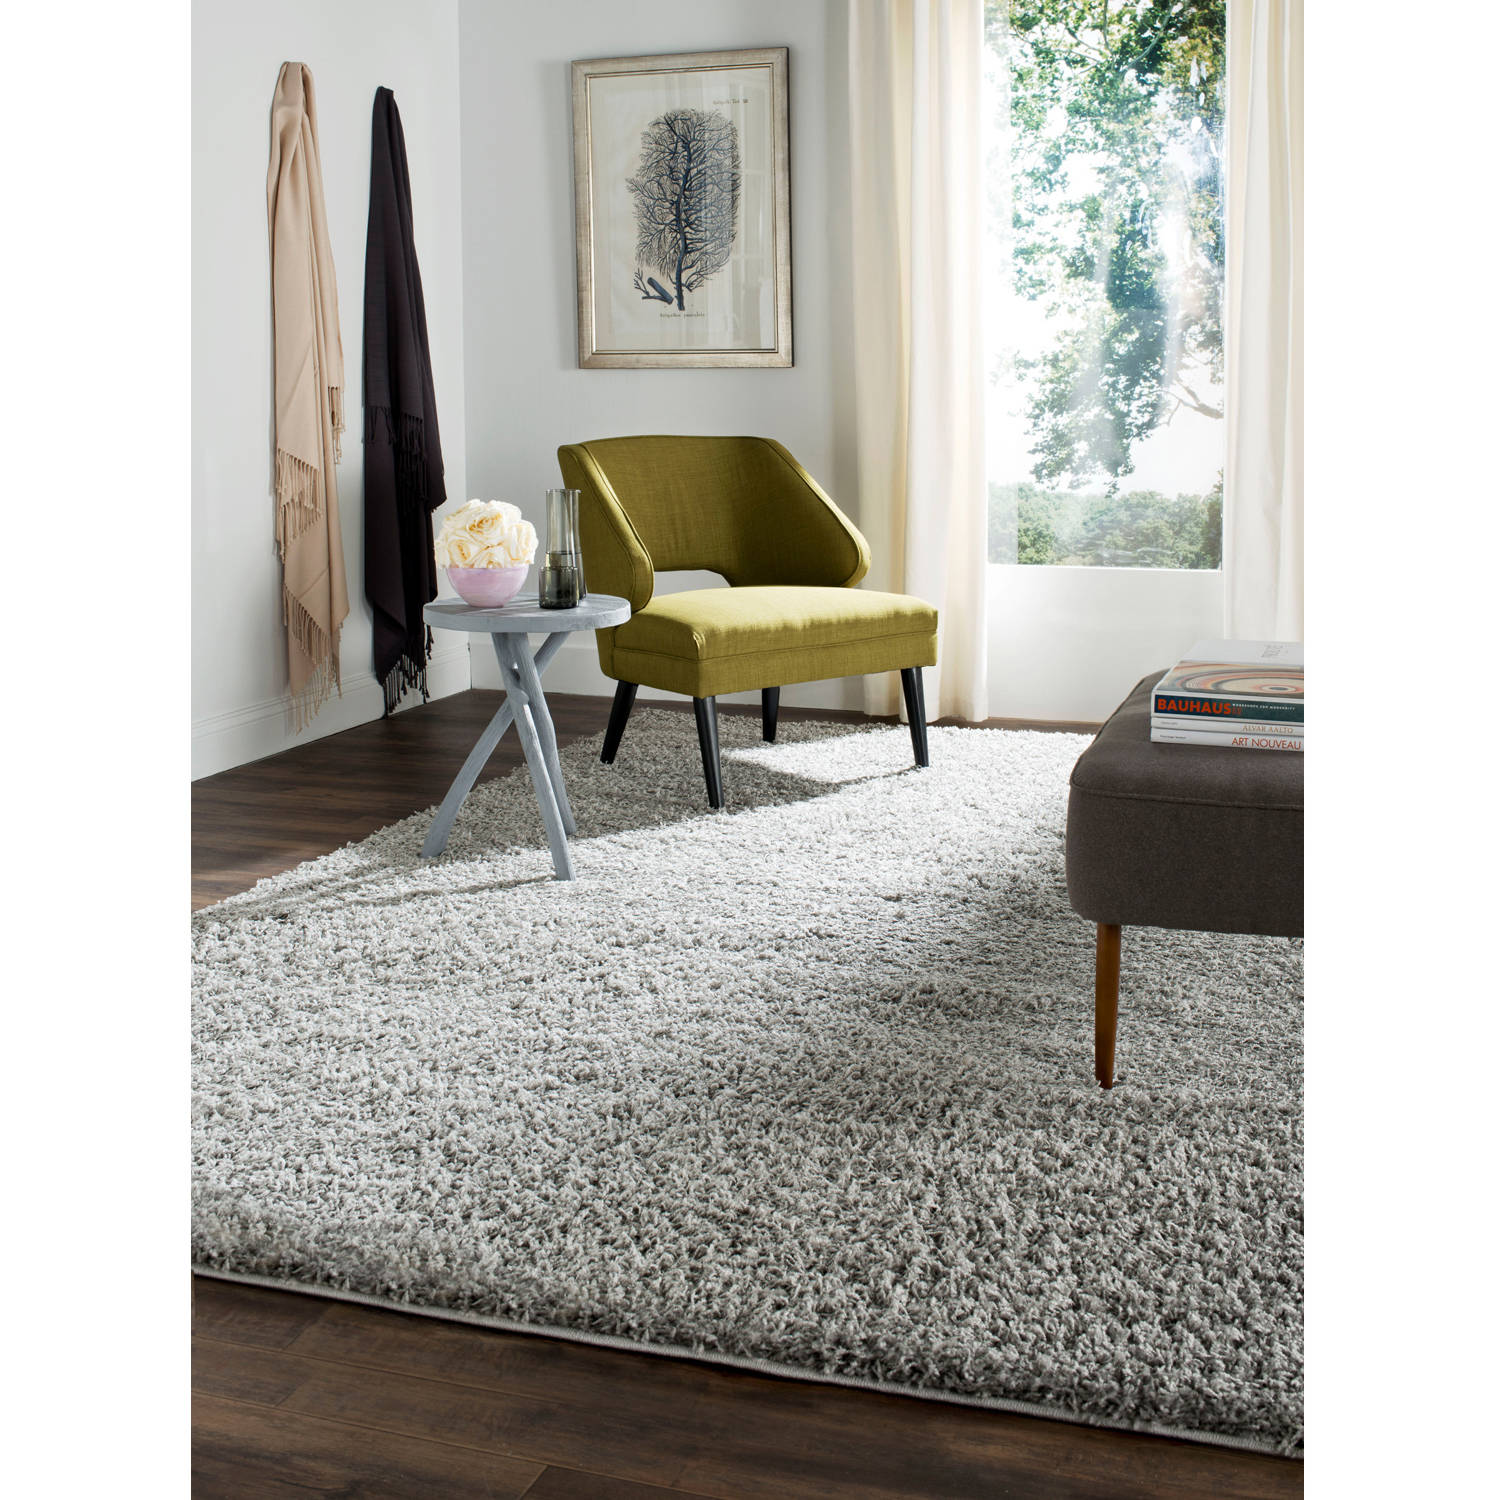 Safavieh Lyndhurst Isadora Traditional Area Rug or Runner